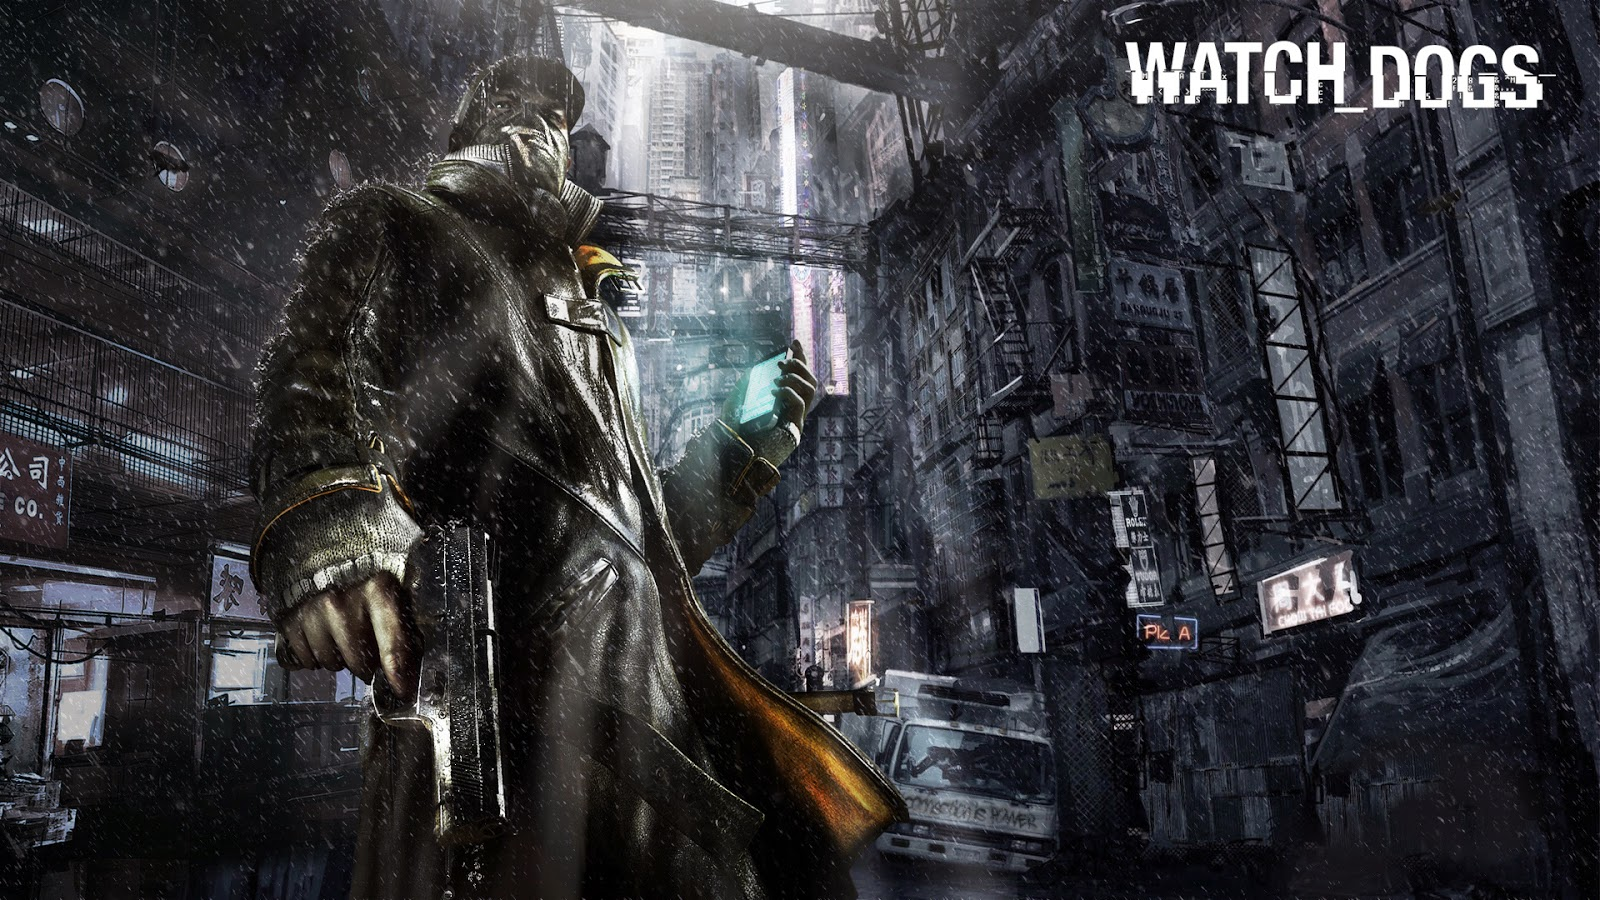 watch dogs pirated version